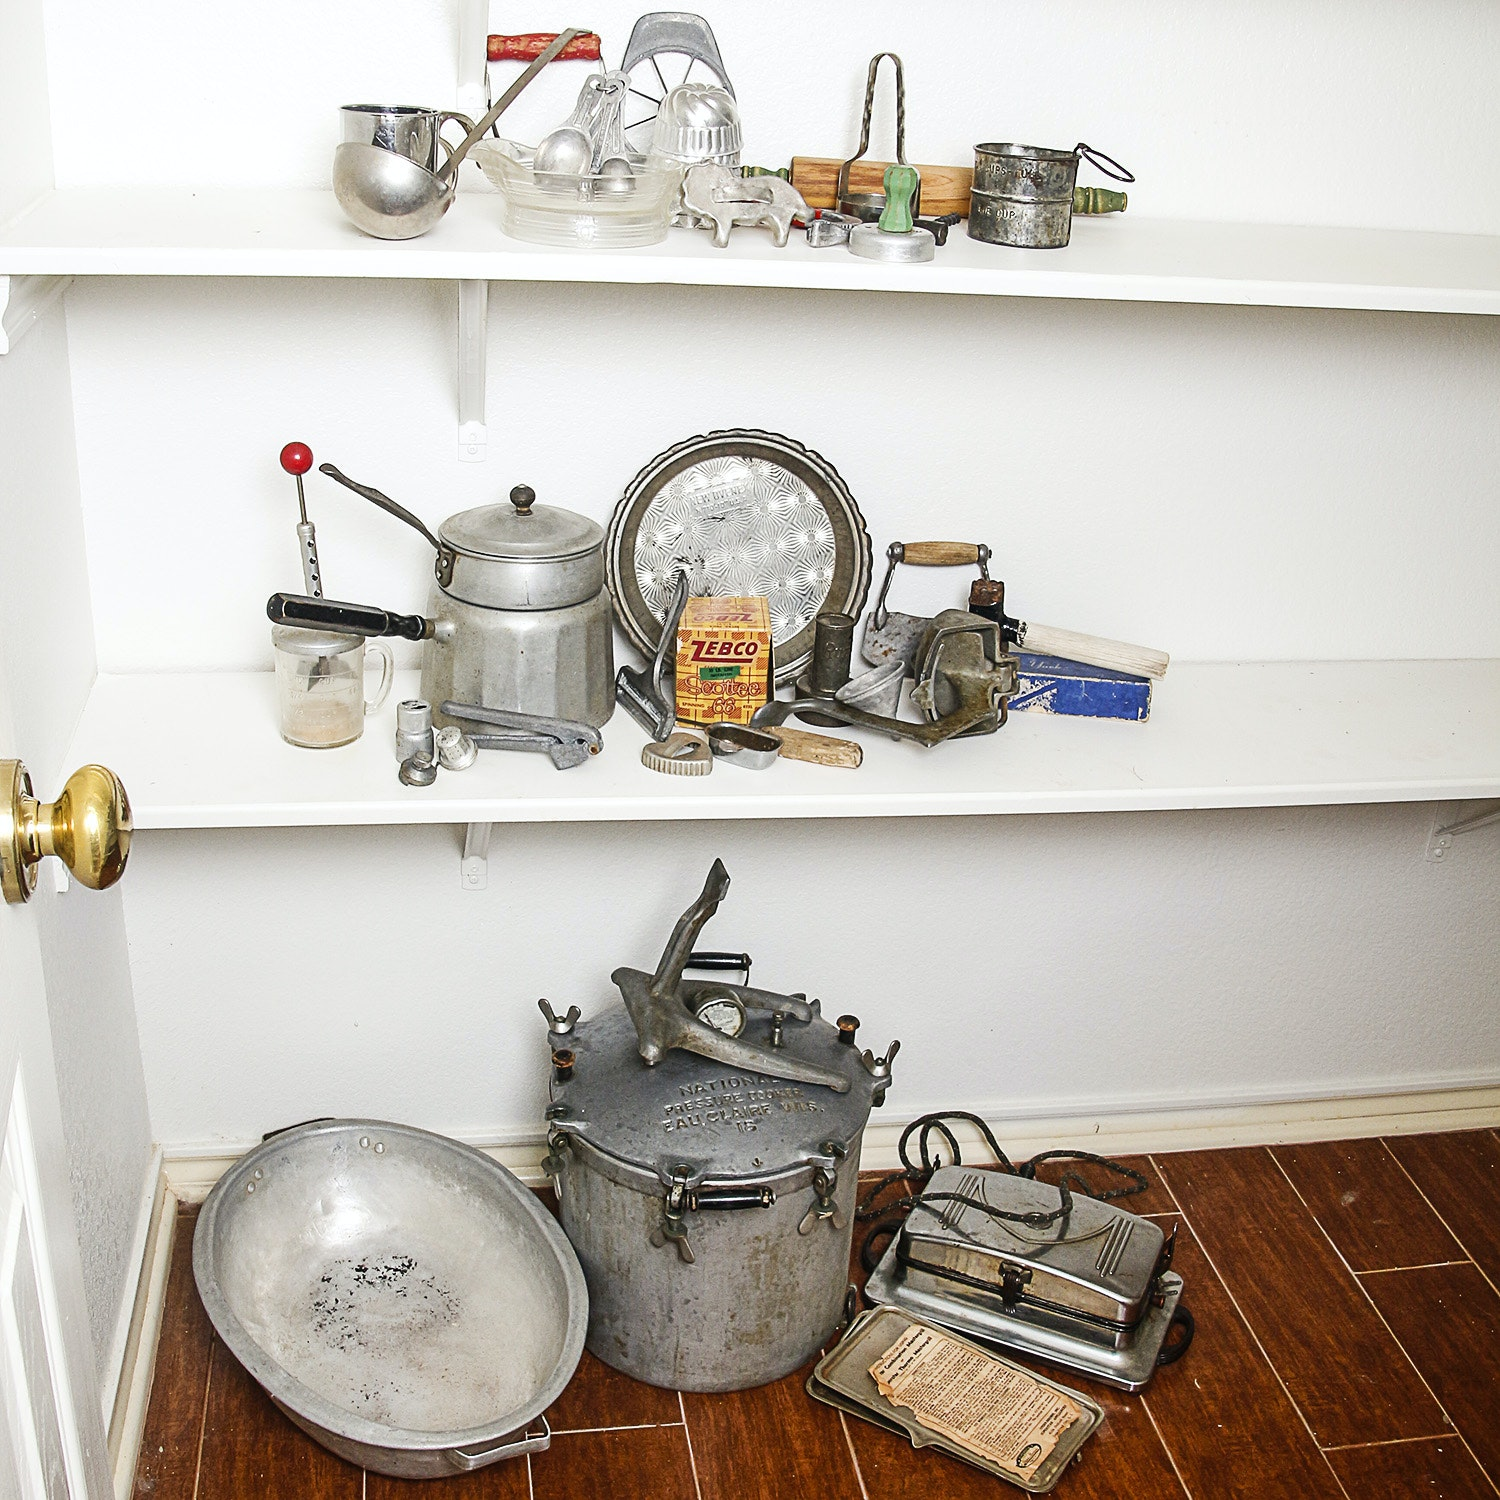 Vintage Kitchen Gadgets and Tools including National Pressure Cooker